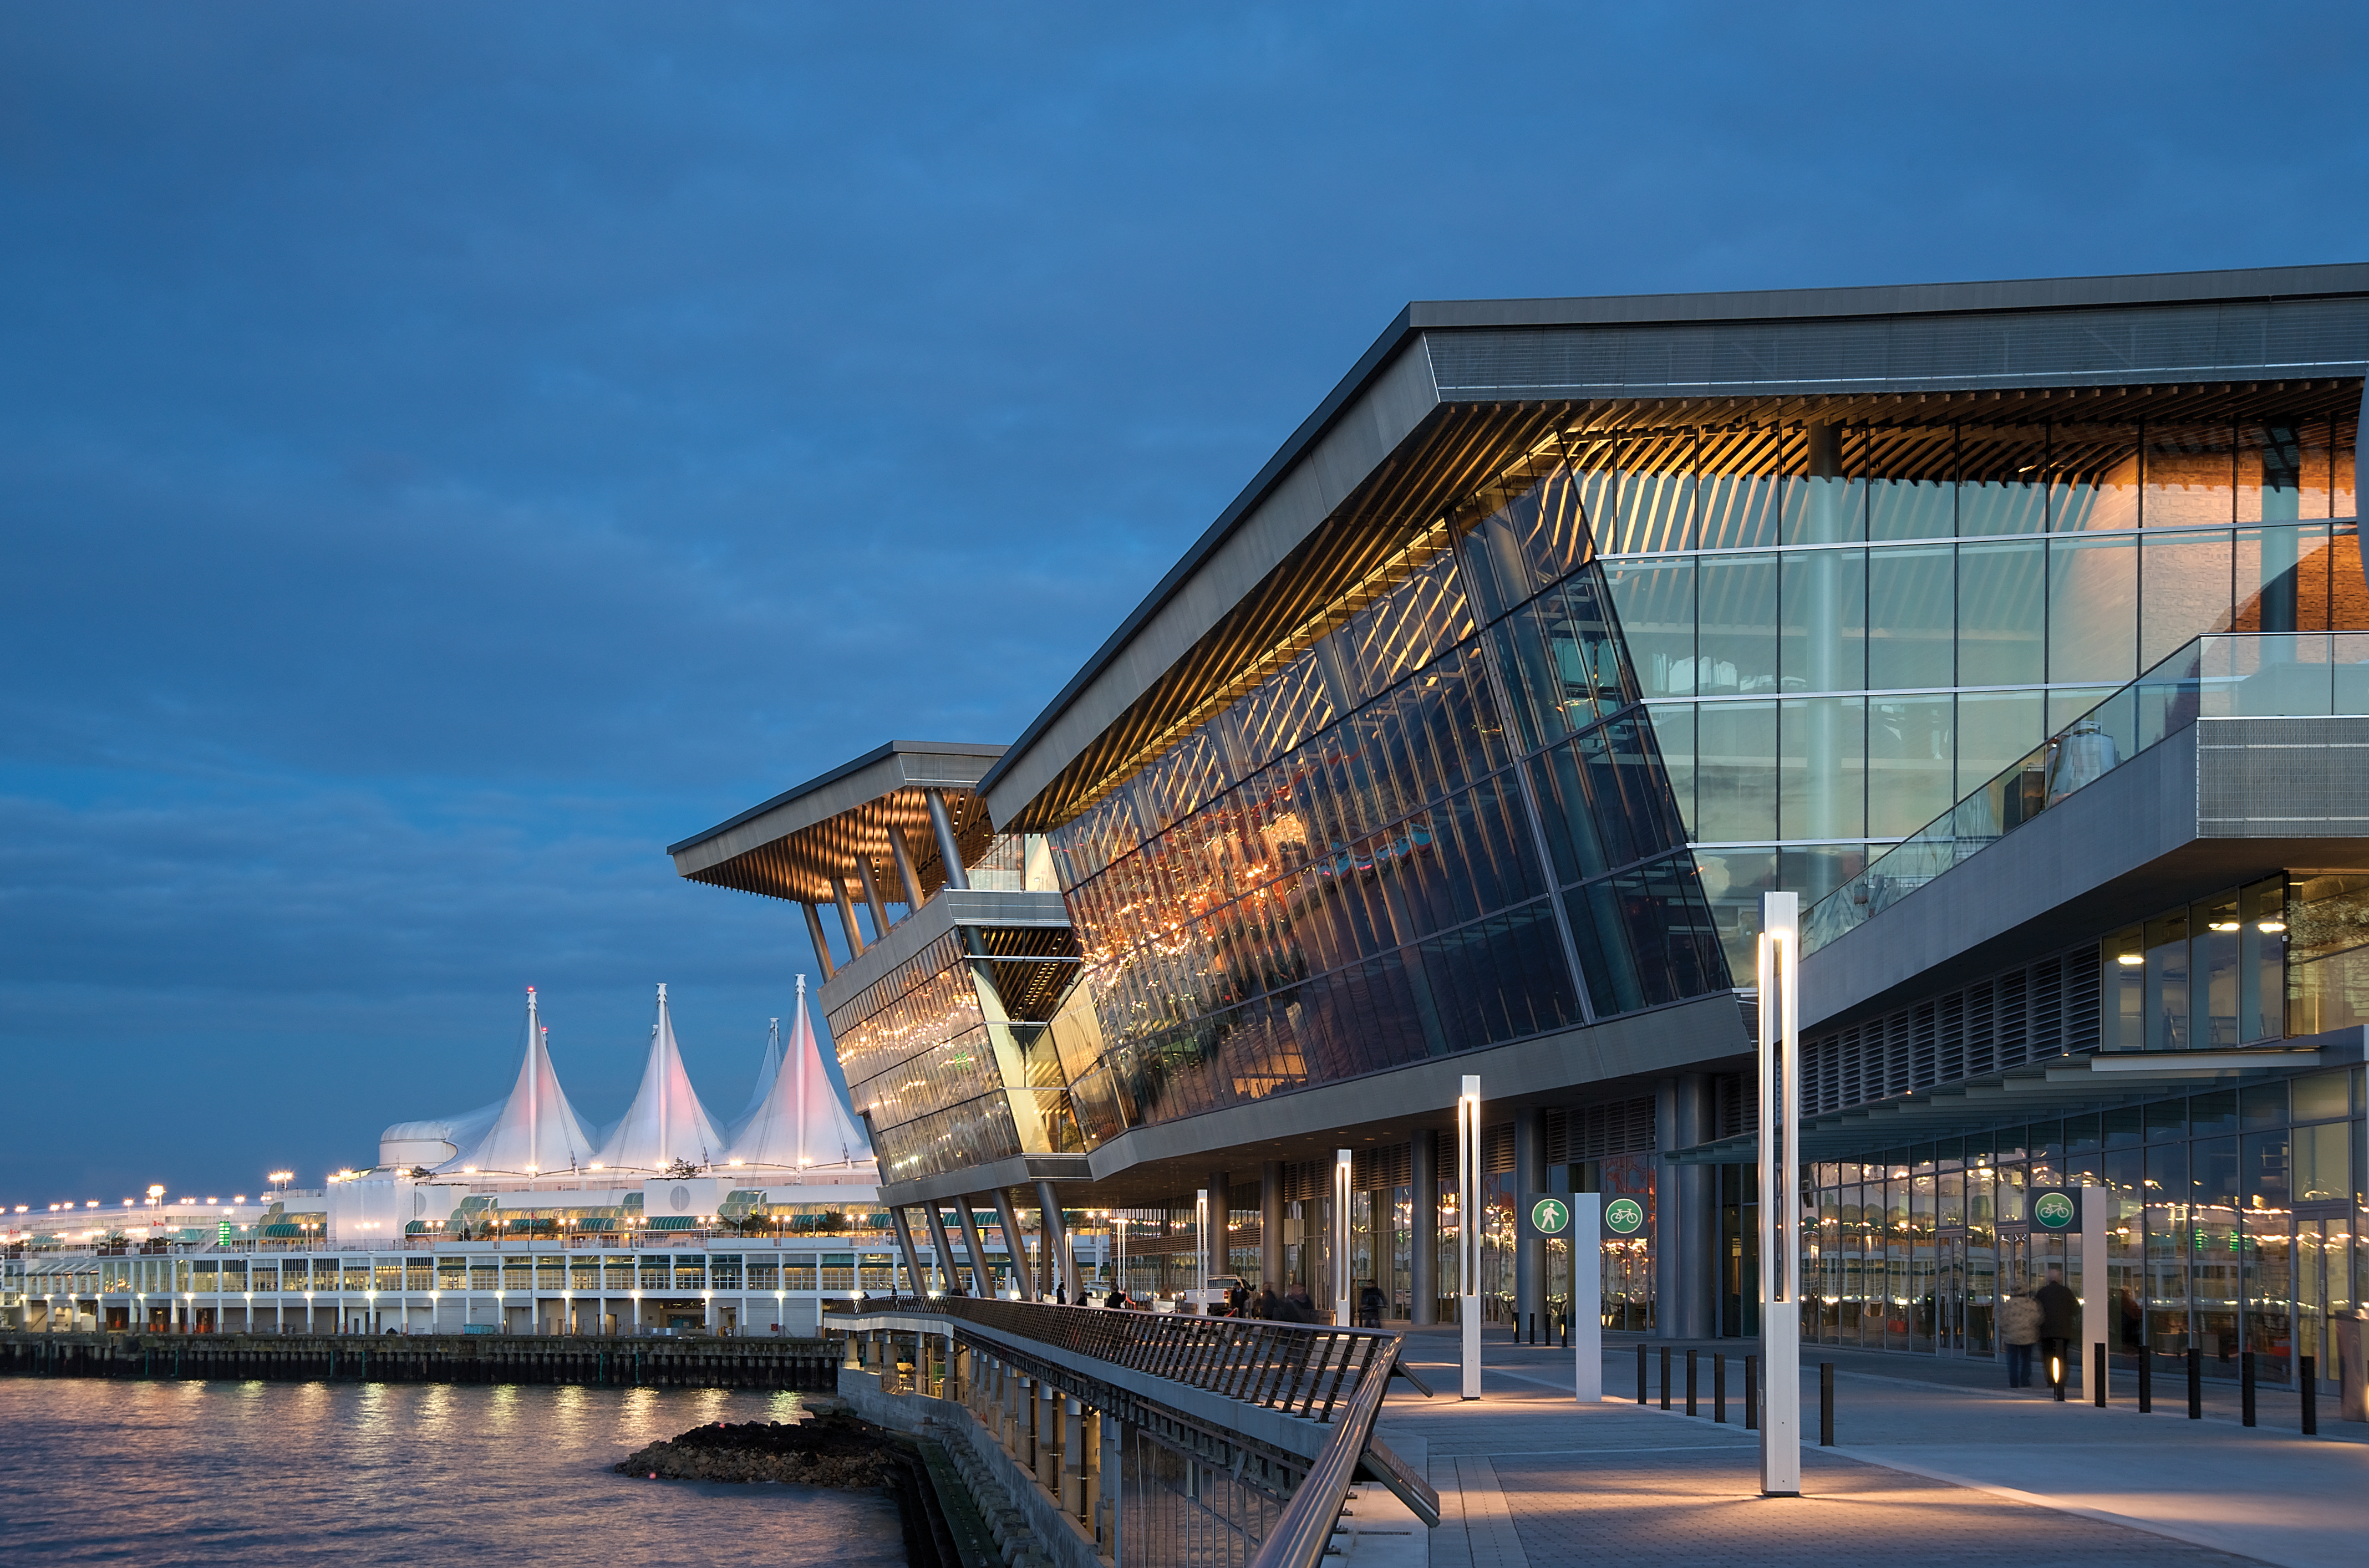 A picture of the Vancouver Convention Centre at dusk with lights on in the glass building sitting on the edge of the water.